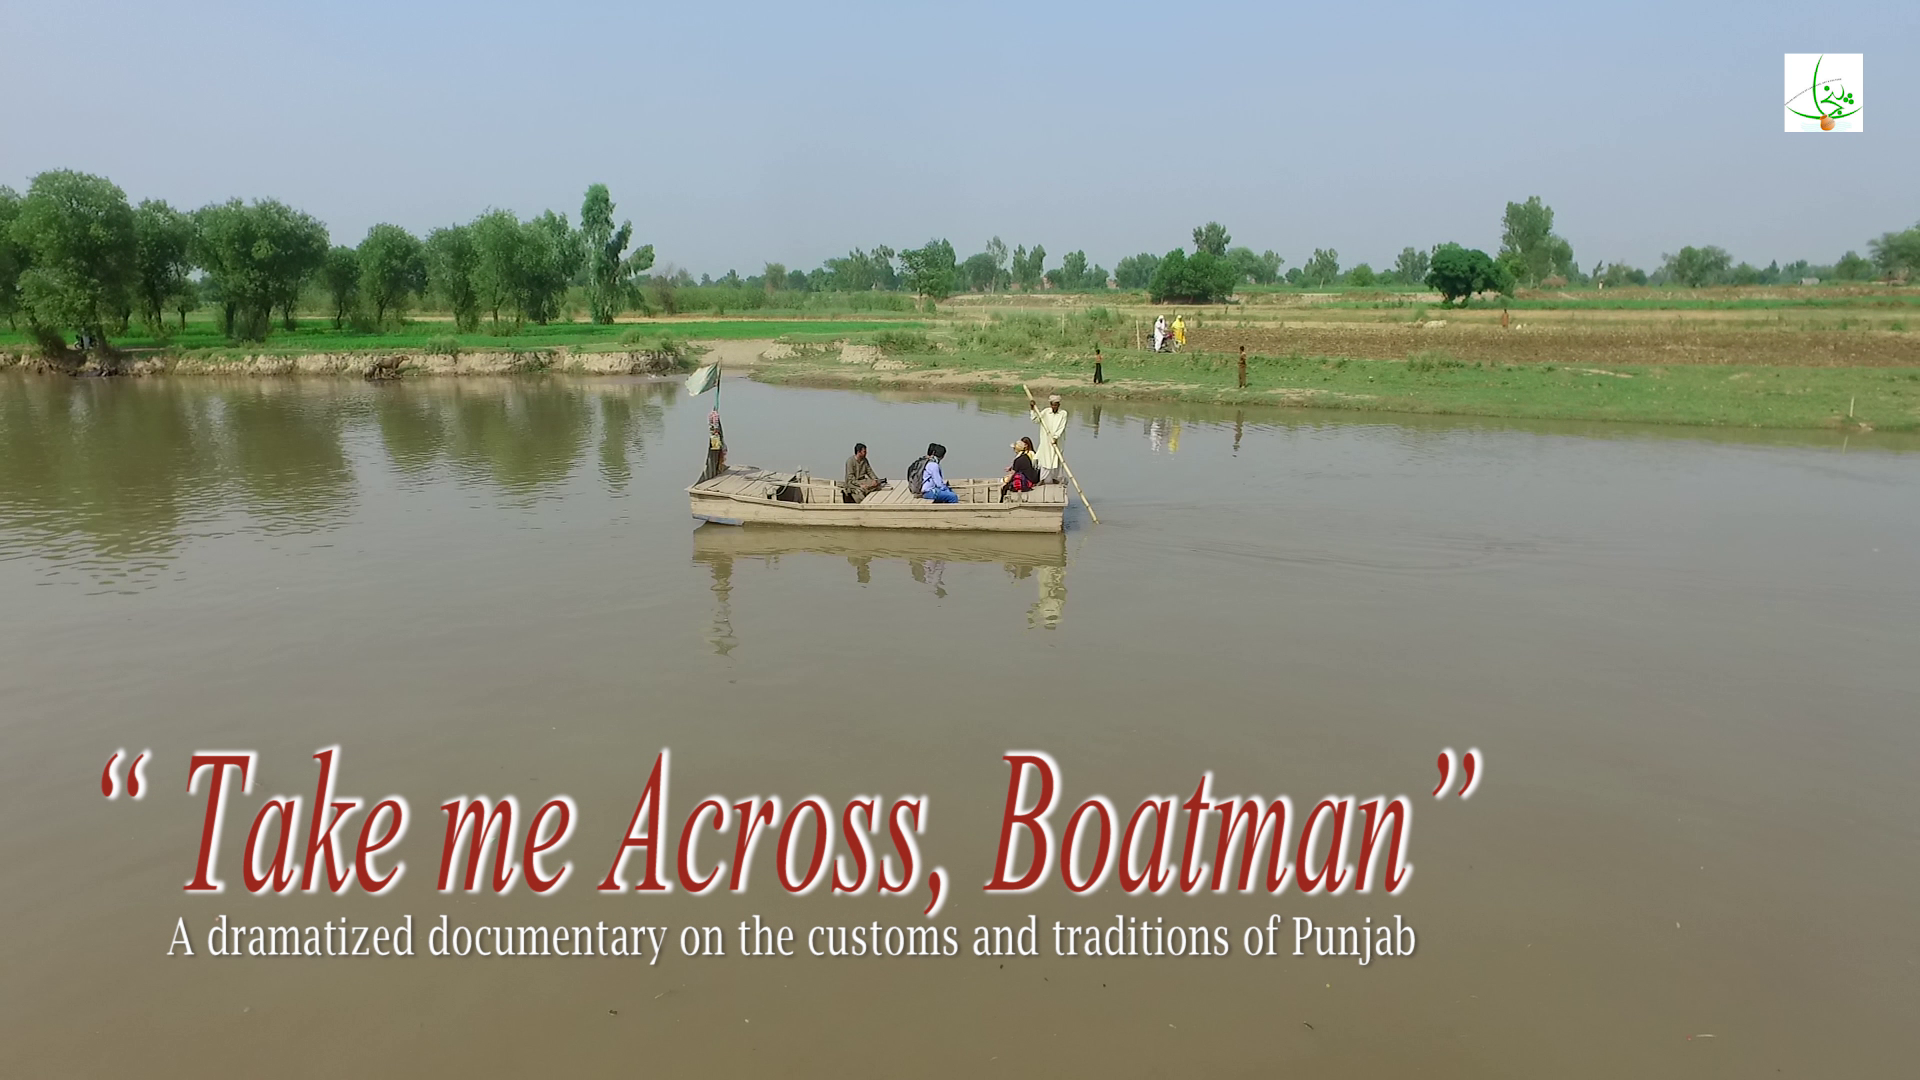 Take Me Home, Boatman